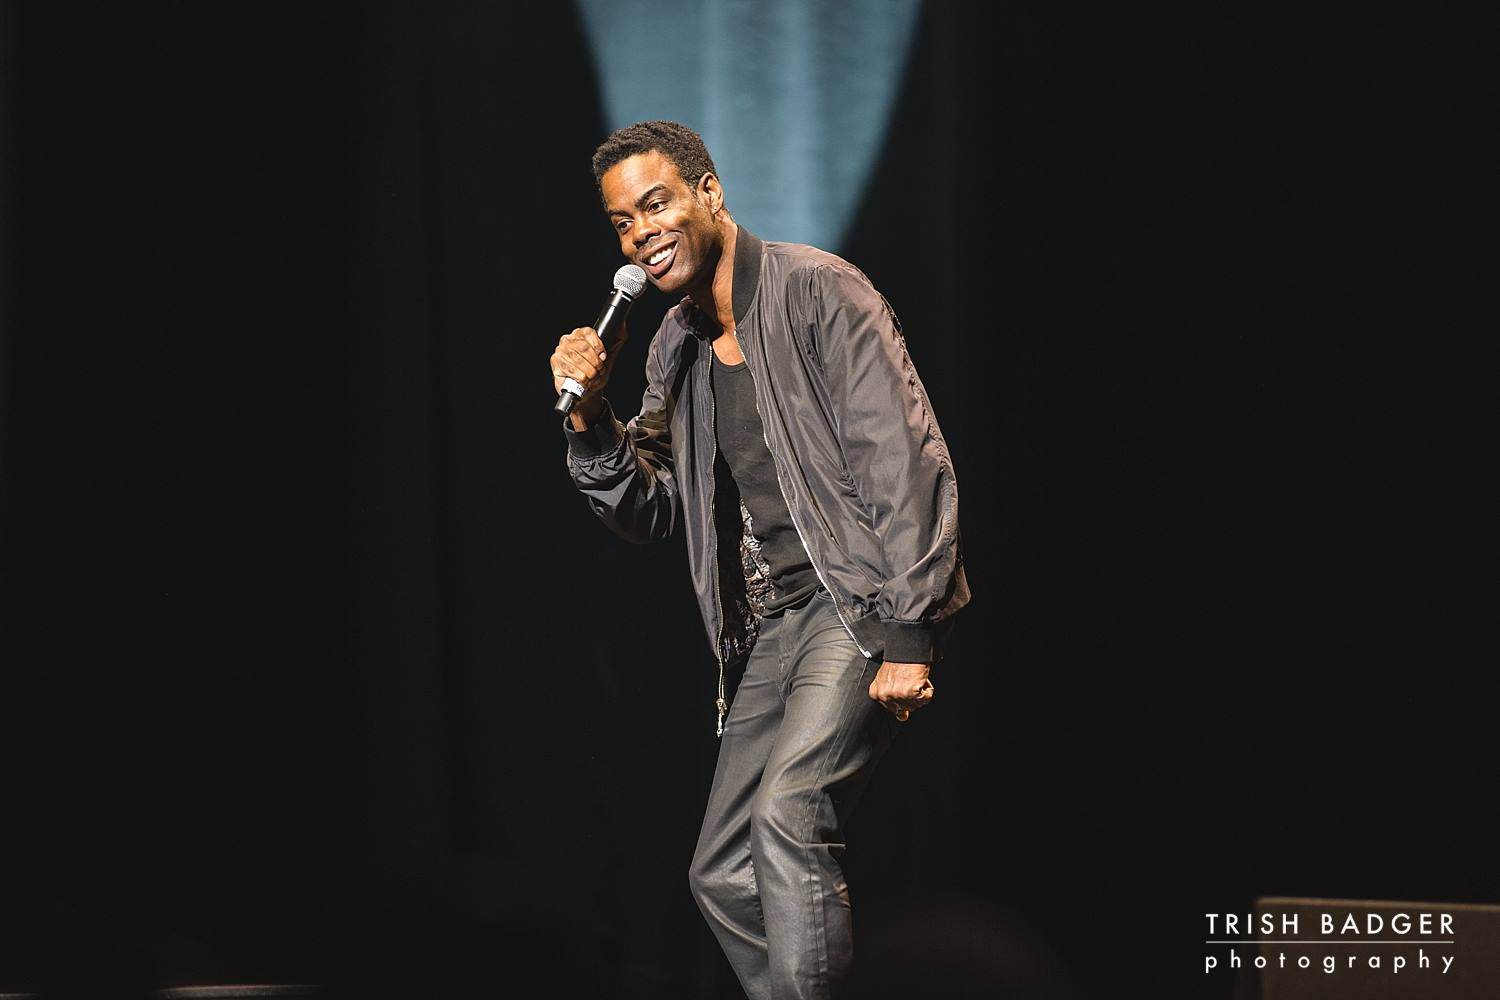 Chris Rock - Trish Badger photography